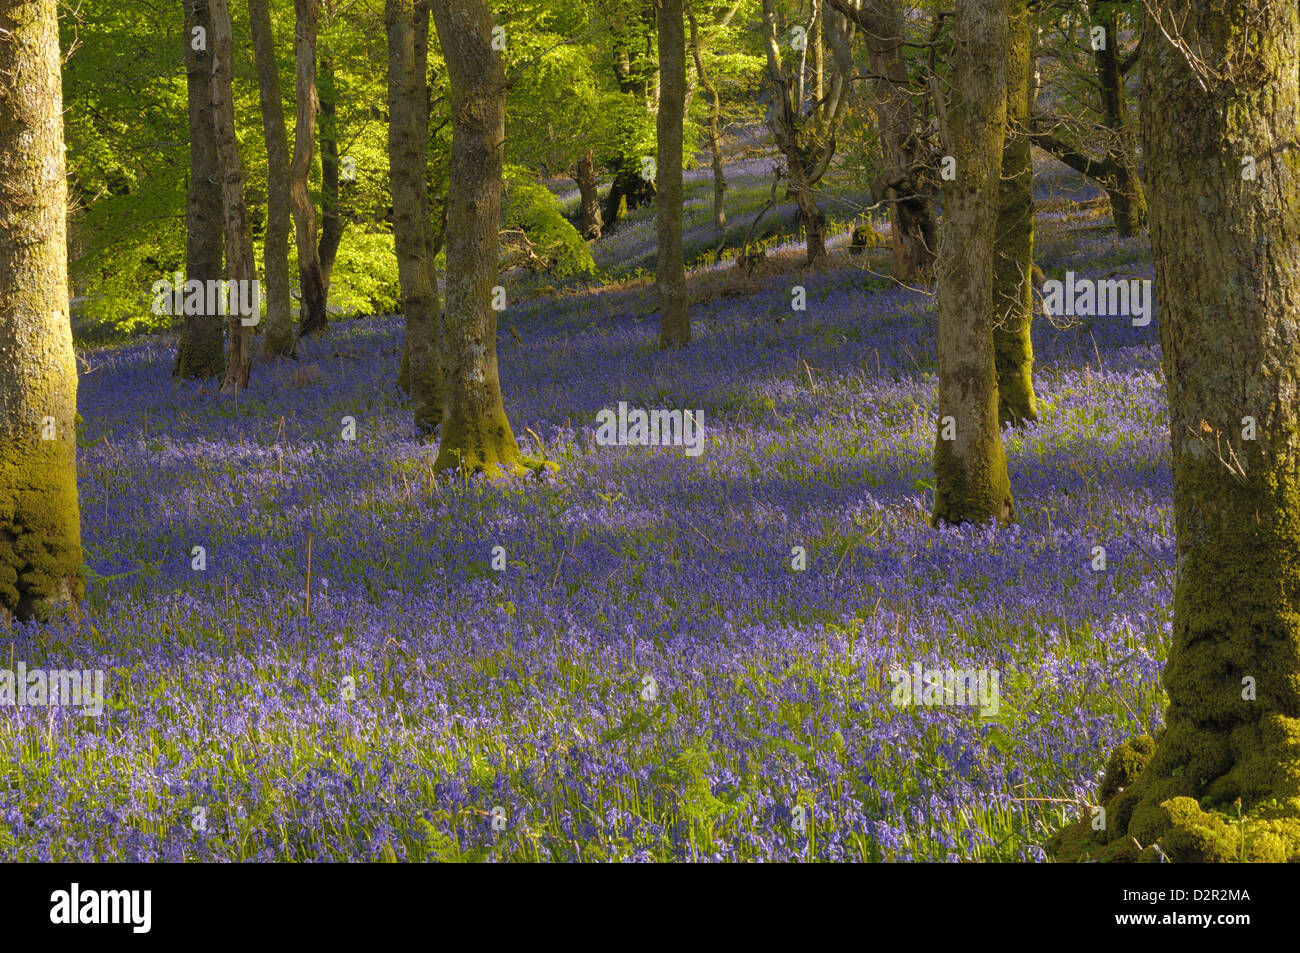 Bluebells in Carstramon Wood, Dumfries and Galloway, Scotland, United Kingdom, Europe - Stock Image